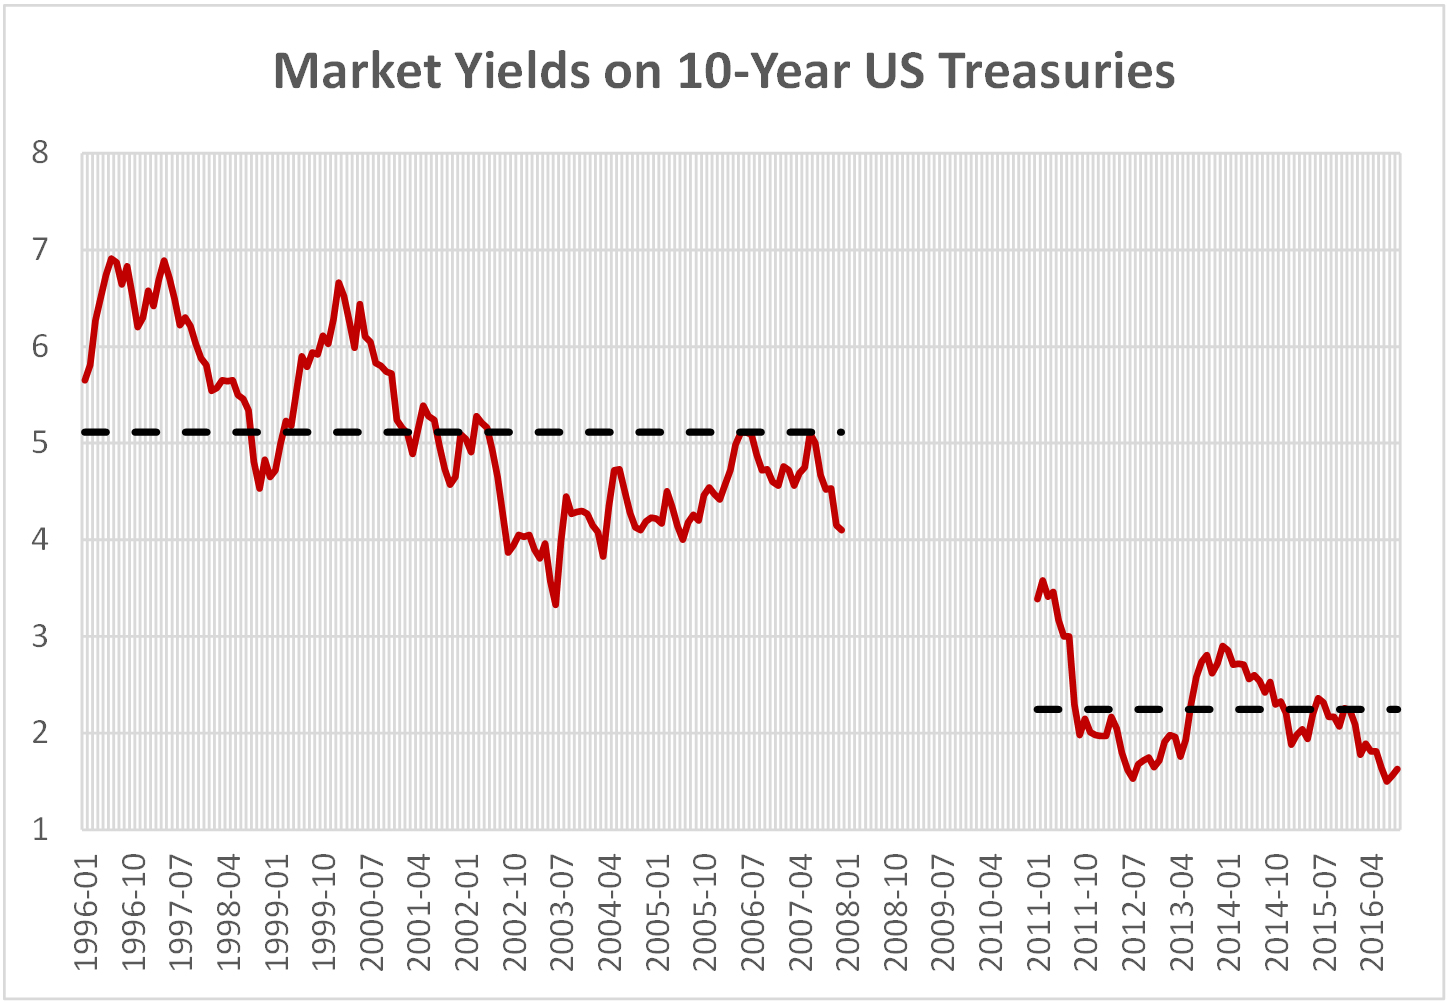 Chart 1.13 - market Yields on 10-year US Treasuries